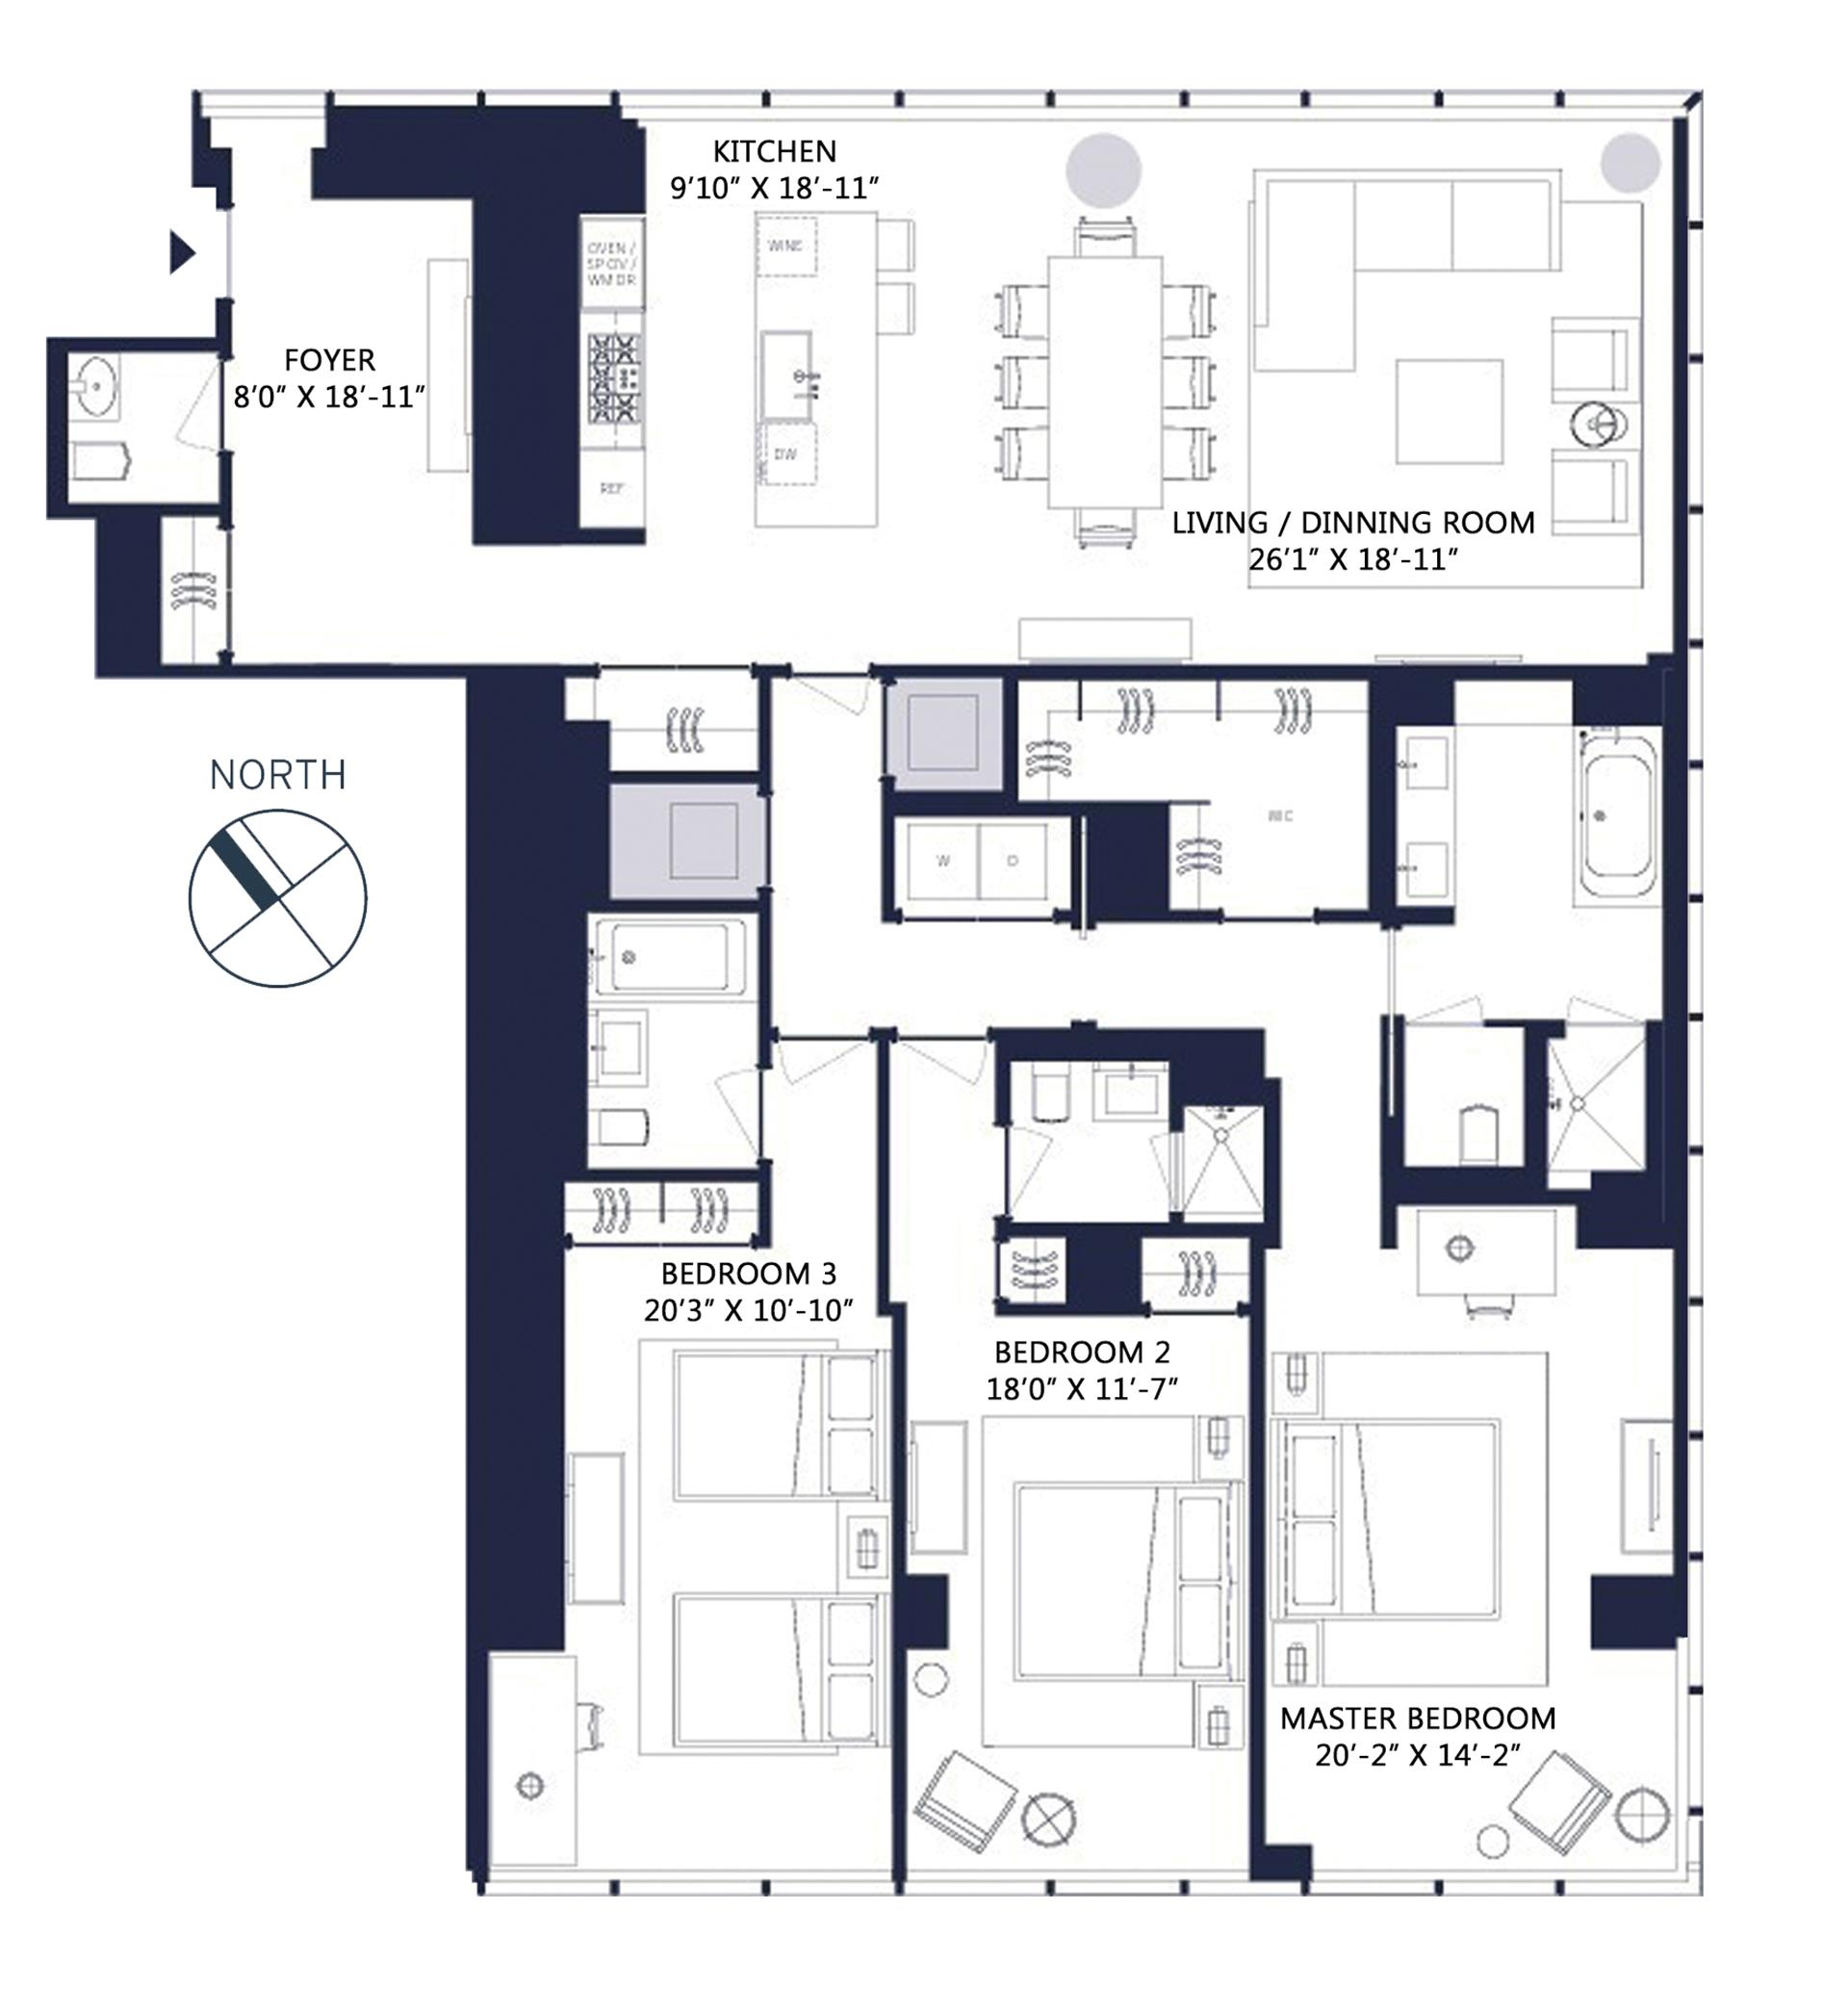 Floor plan of One57, 157 West 57th St, 35F - Central Park South, New York